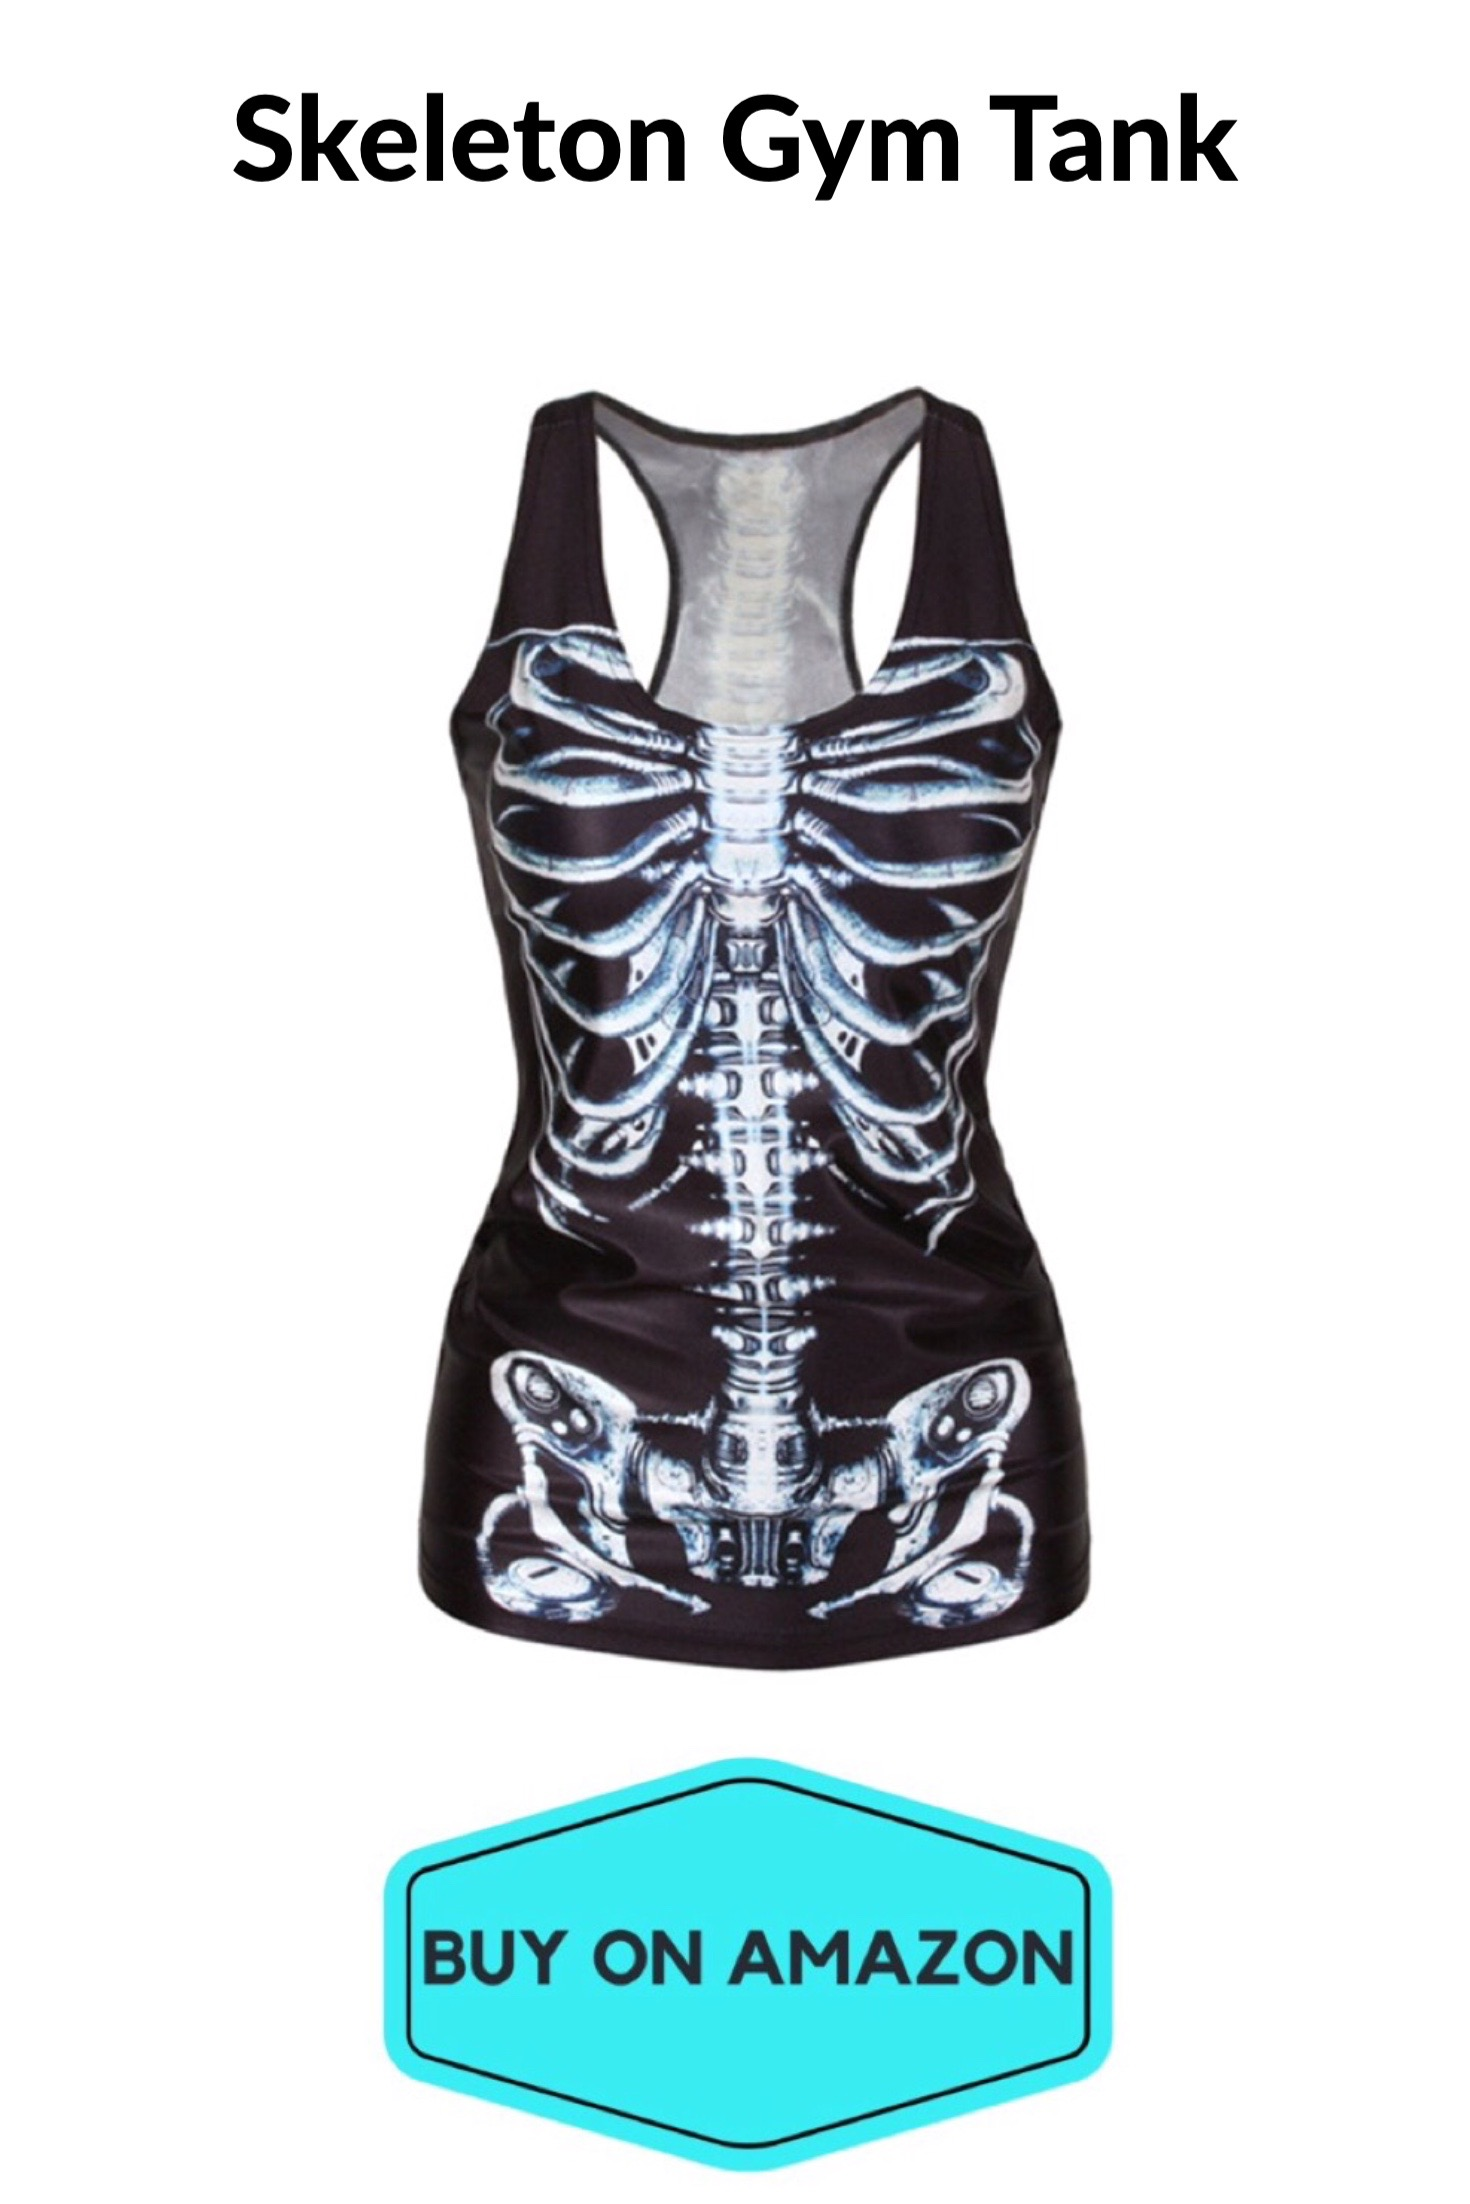 Skeleton Gym Tank